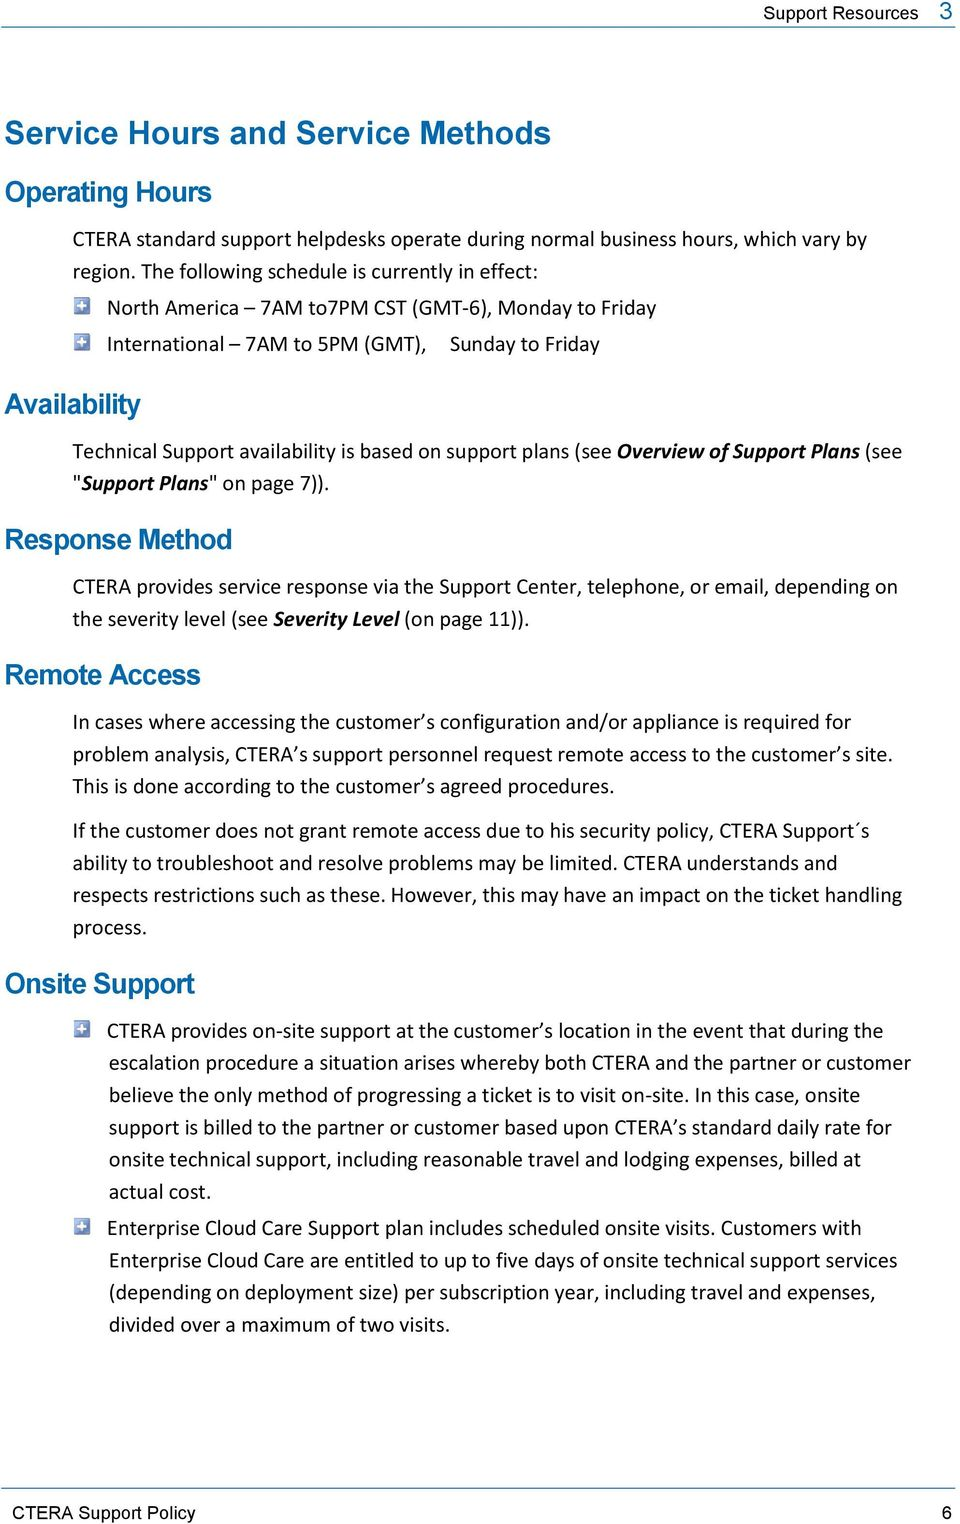 "based on support plans (see Overview of Support Plans (see ""Support Plans"" on page 7))."